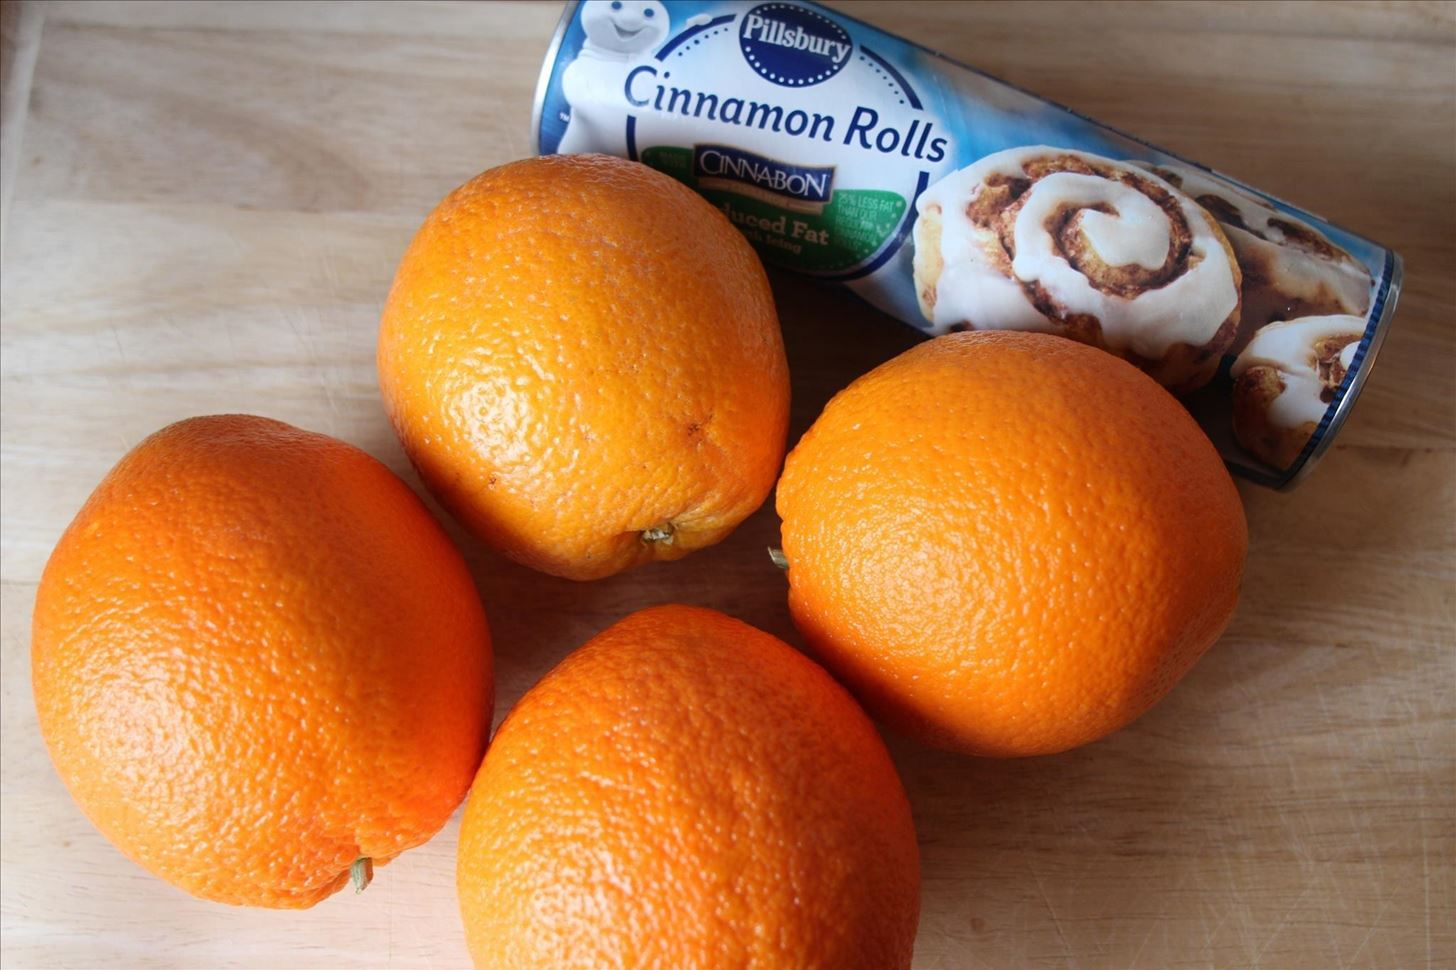 How to Bake or Grill Cinnamon Buns in Orange Peels